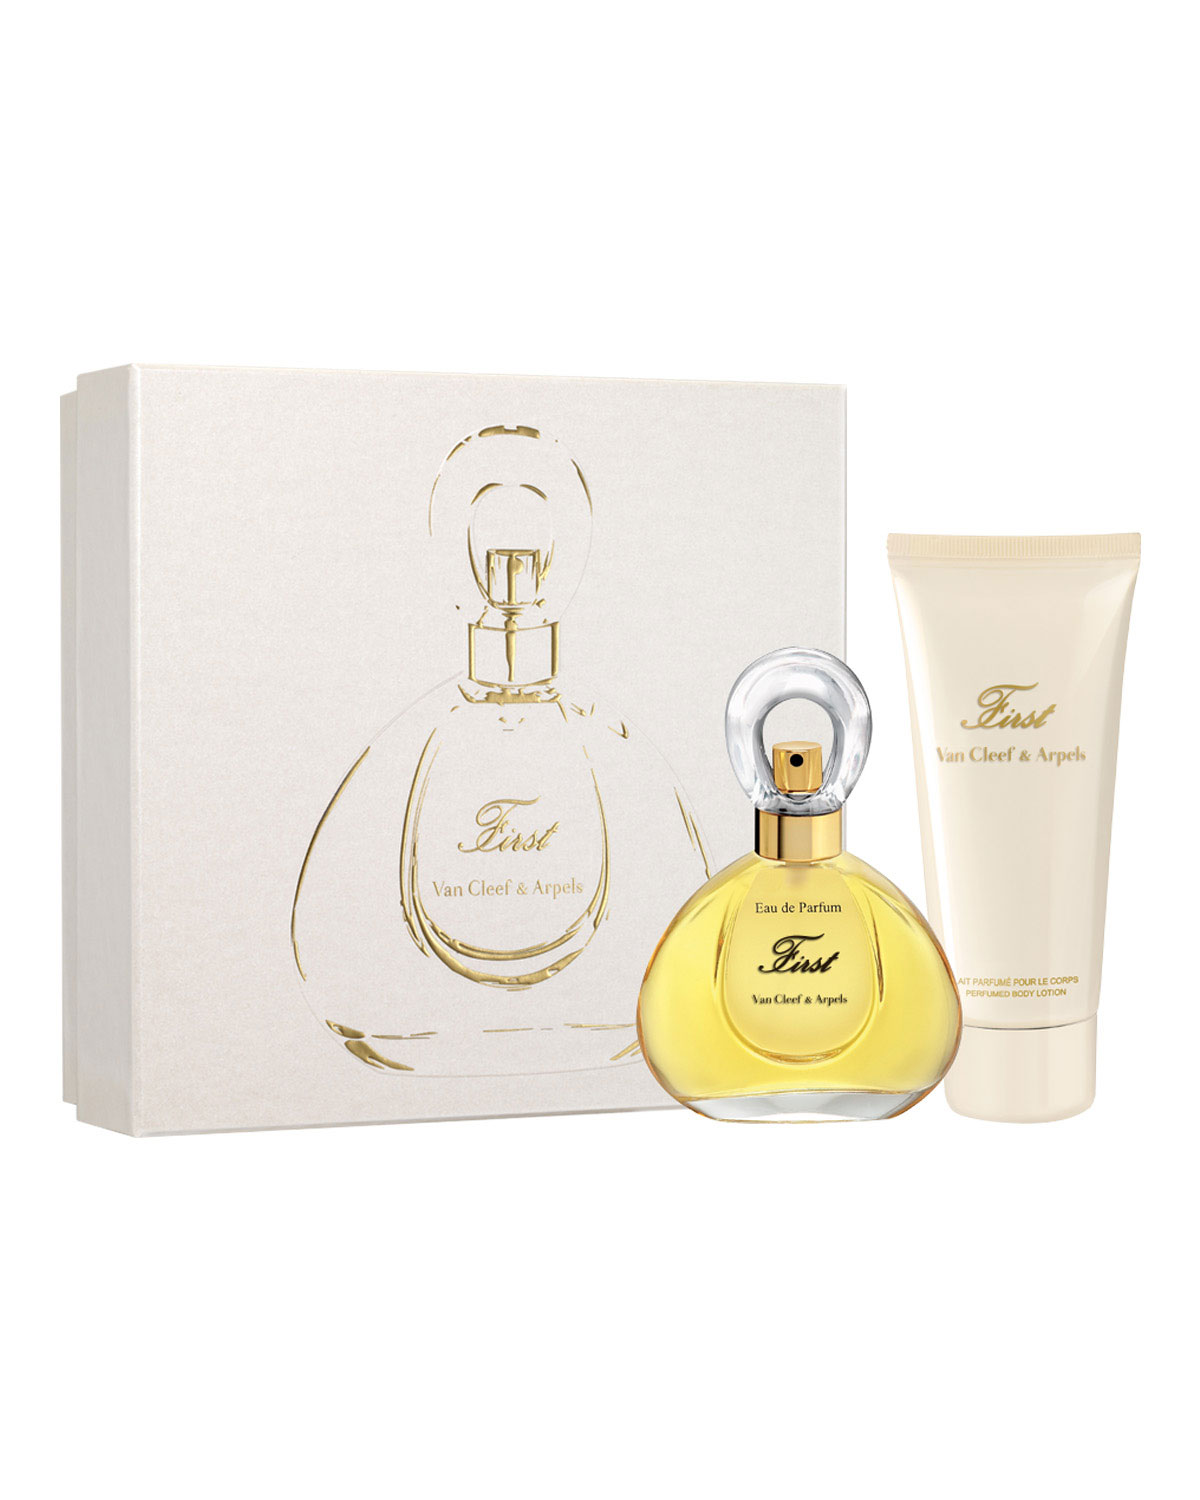 VAN CLEEF & ARPELS Limited Edition First Gift Set